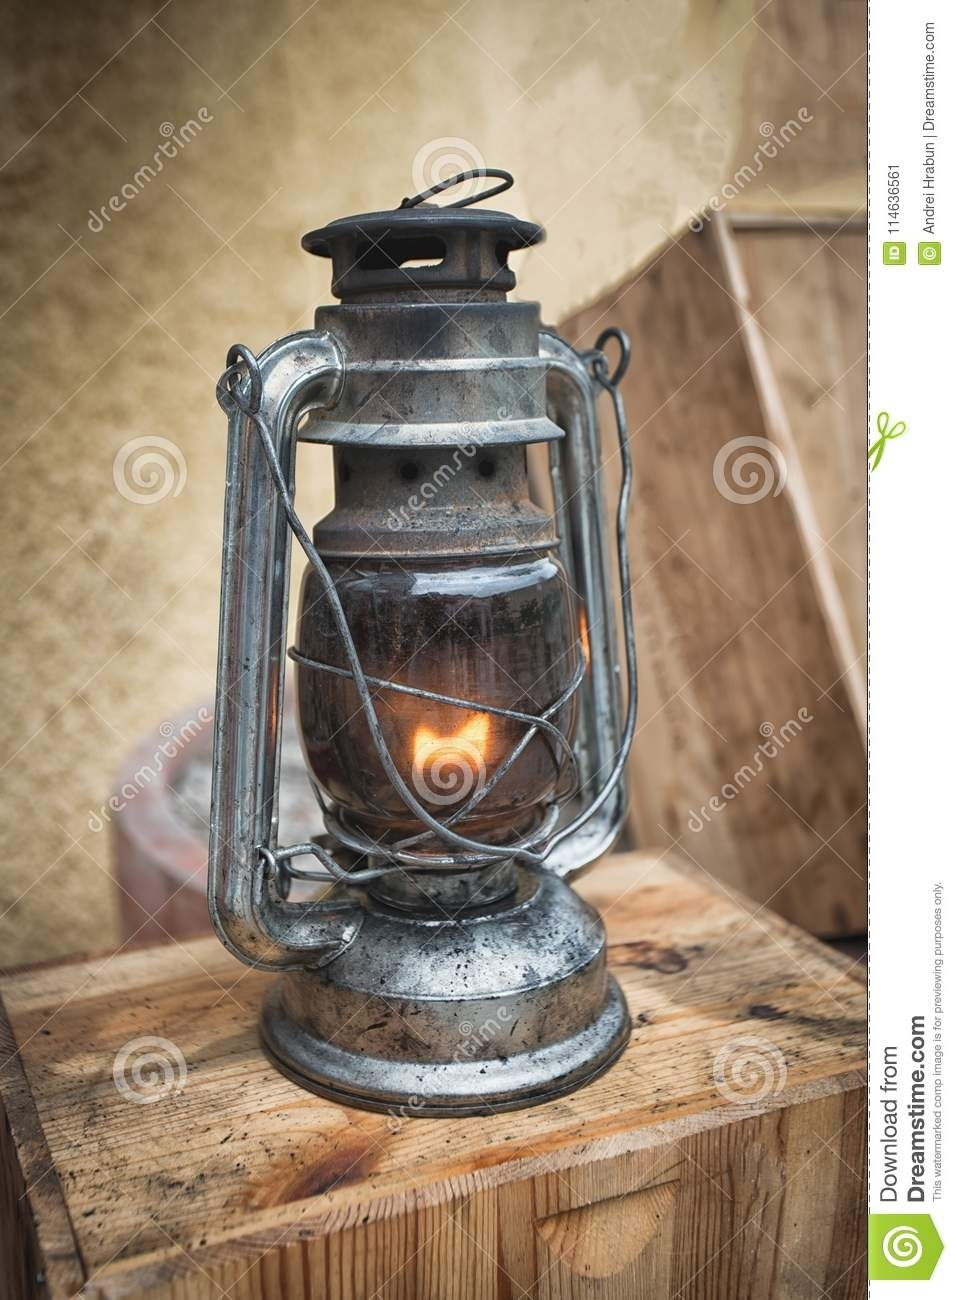 Old Fashioned Lantern On The Wooden Table. Vintage Style Metal Lamp with regard to Outdoor Lanterns for Tables (Image 11 of 20)